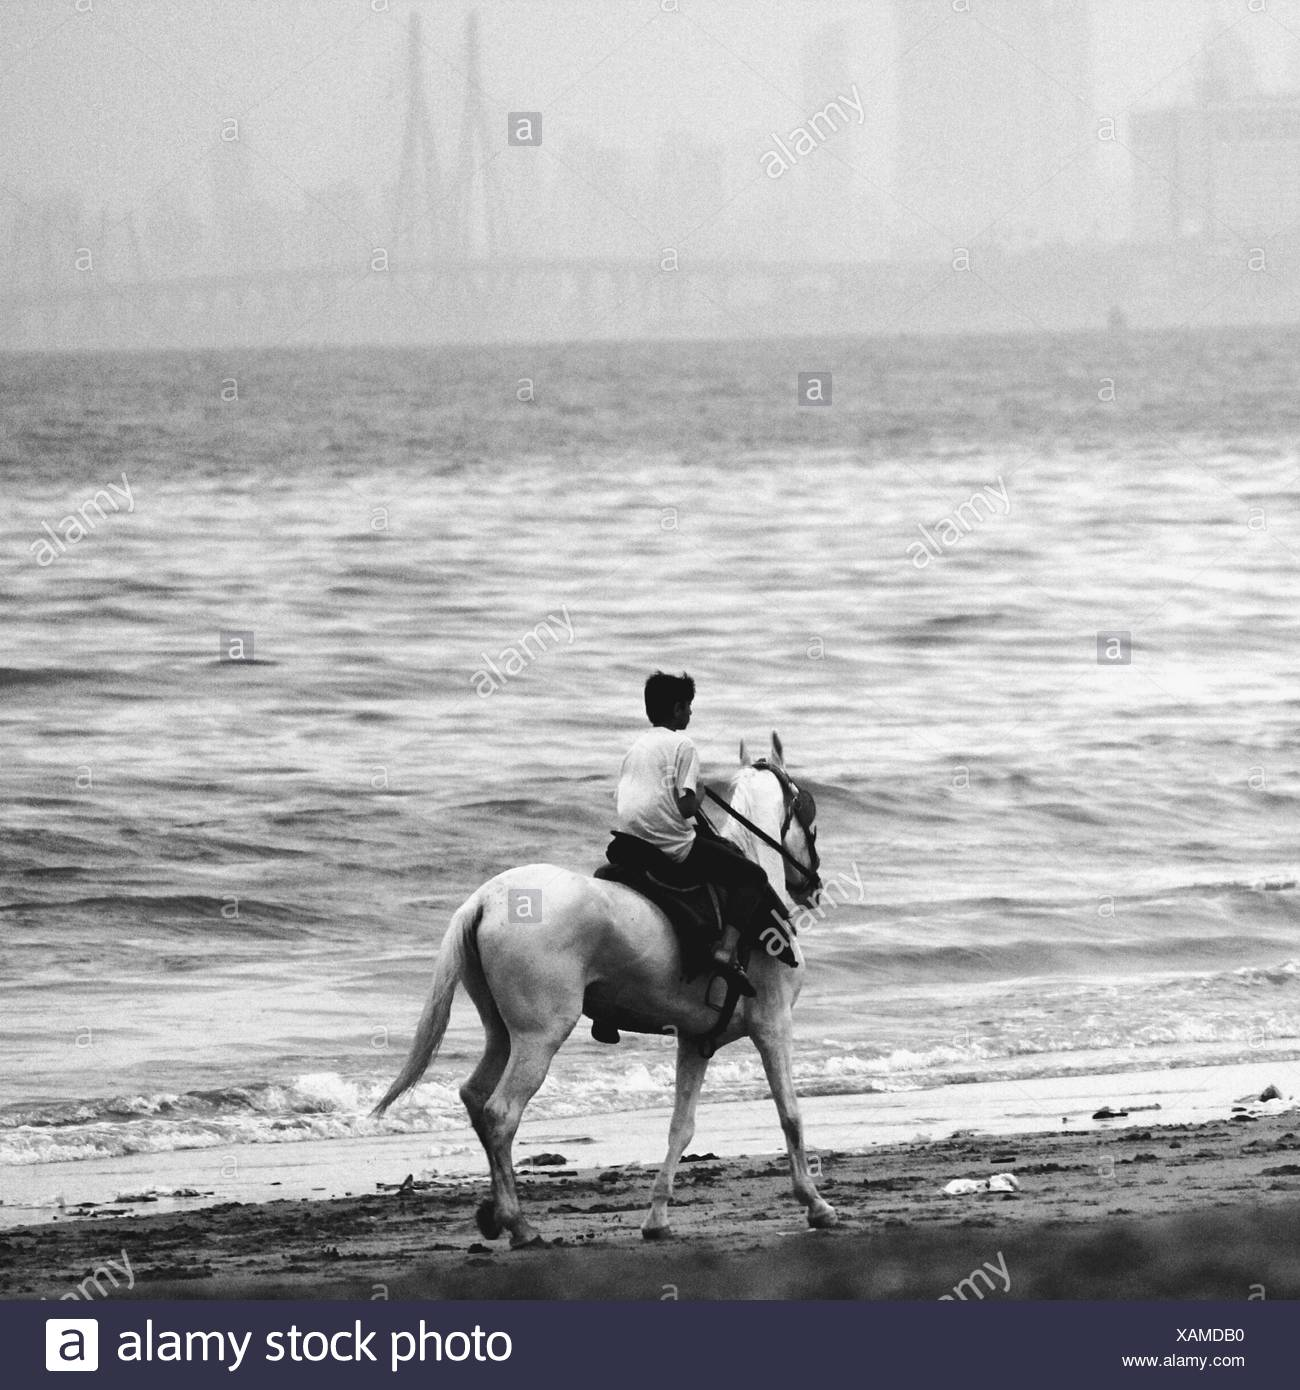 Person Riding Horse On Beach - Stock Image